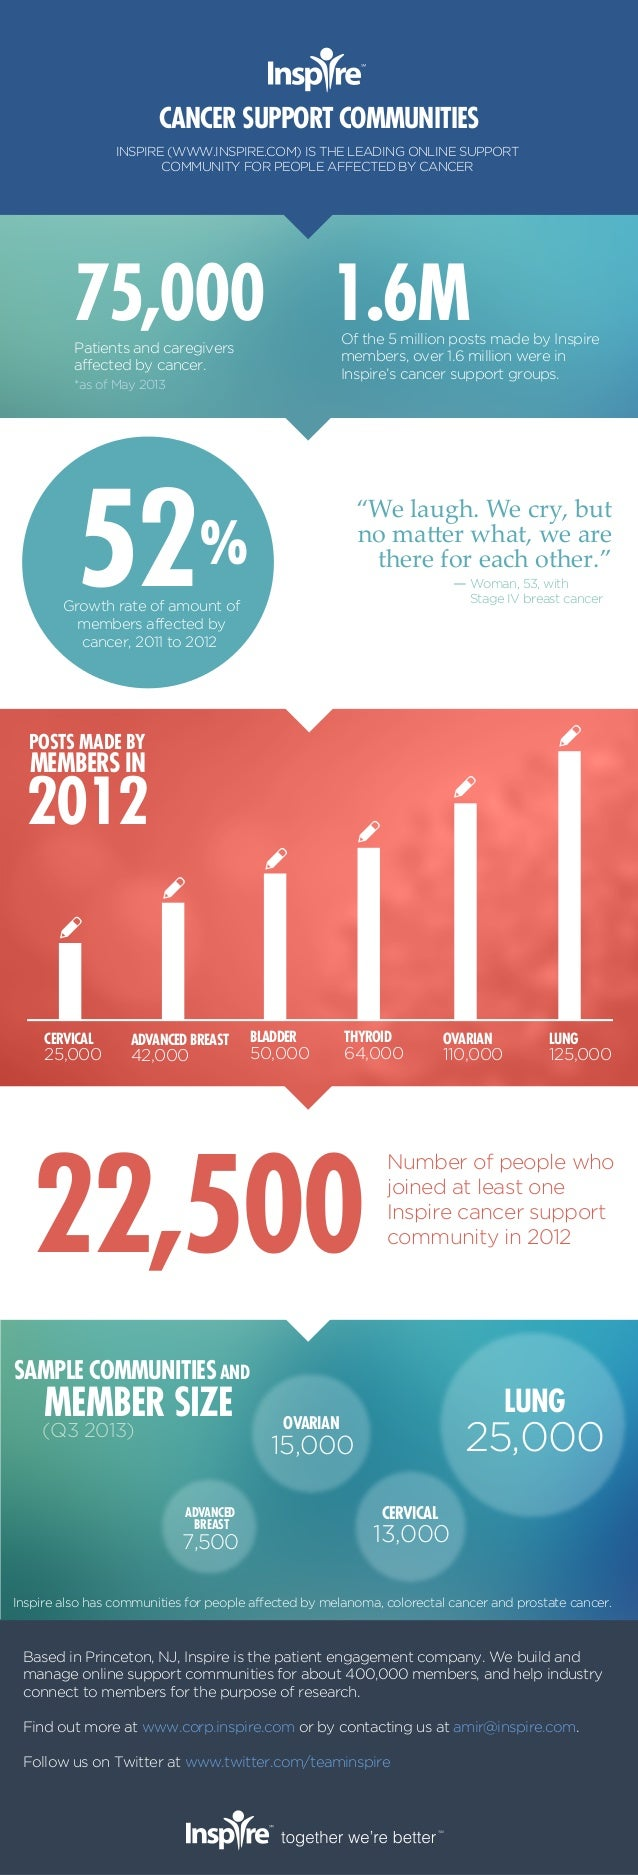 CANCER SUPPORT COMMUNITIES INSPIRE (WWW.INSPIRE.COM) IS THE LEADING ONLINE SUPPORT COMMUNITY FOR PEOPLE AFFECTED BY CANCER...